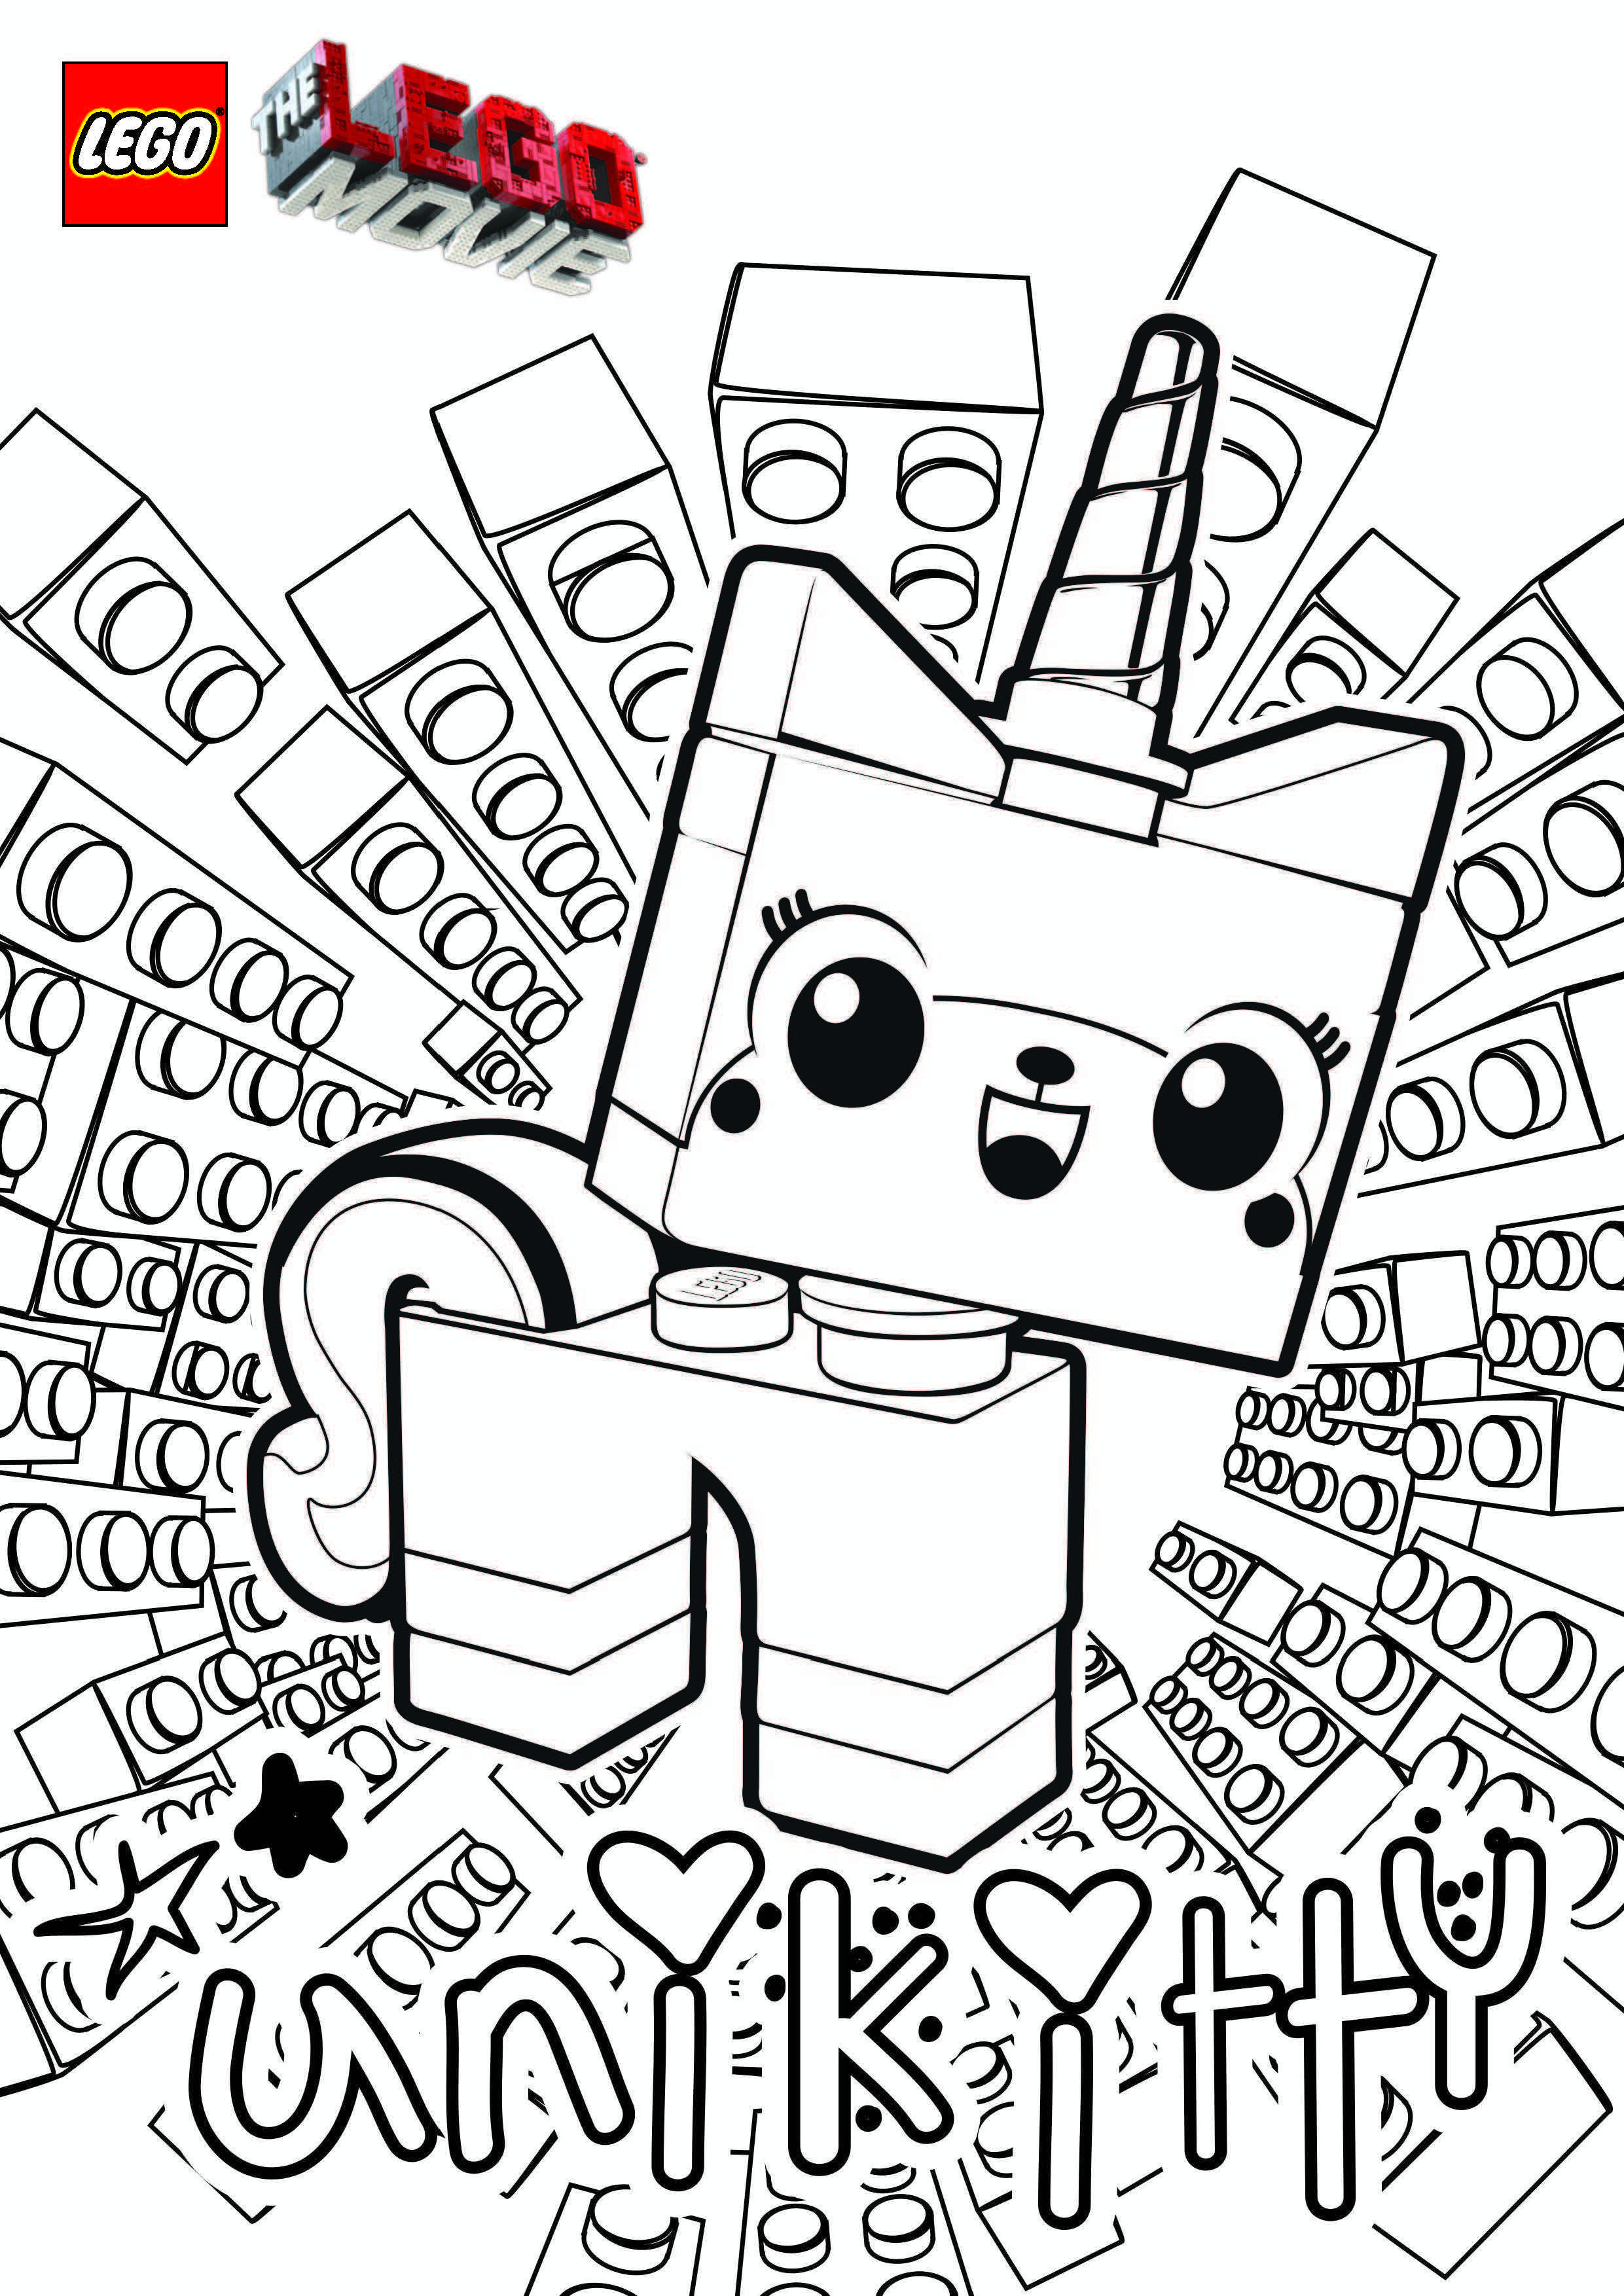 The Lego Movie Unikitty Coloring Page Lego Movie Coloring Pages Lego Coloring Pages Unicorn Coloring Pages